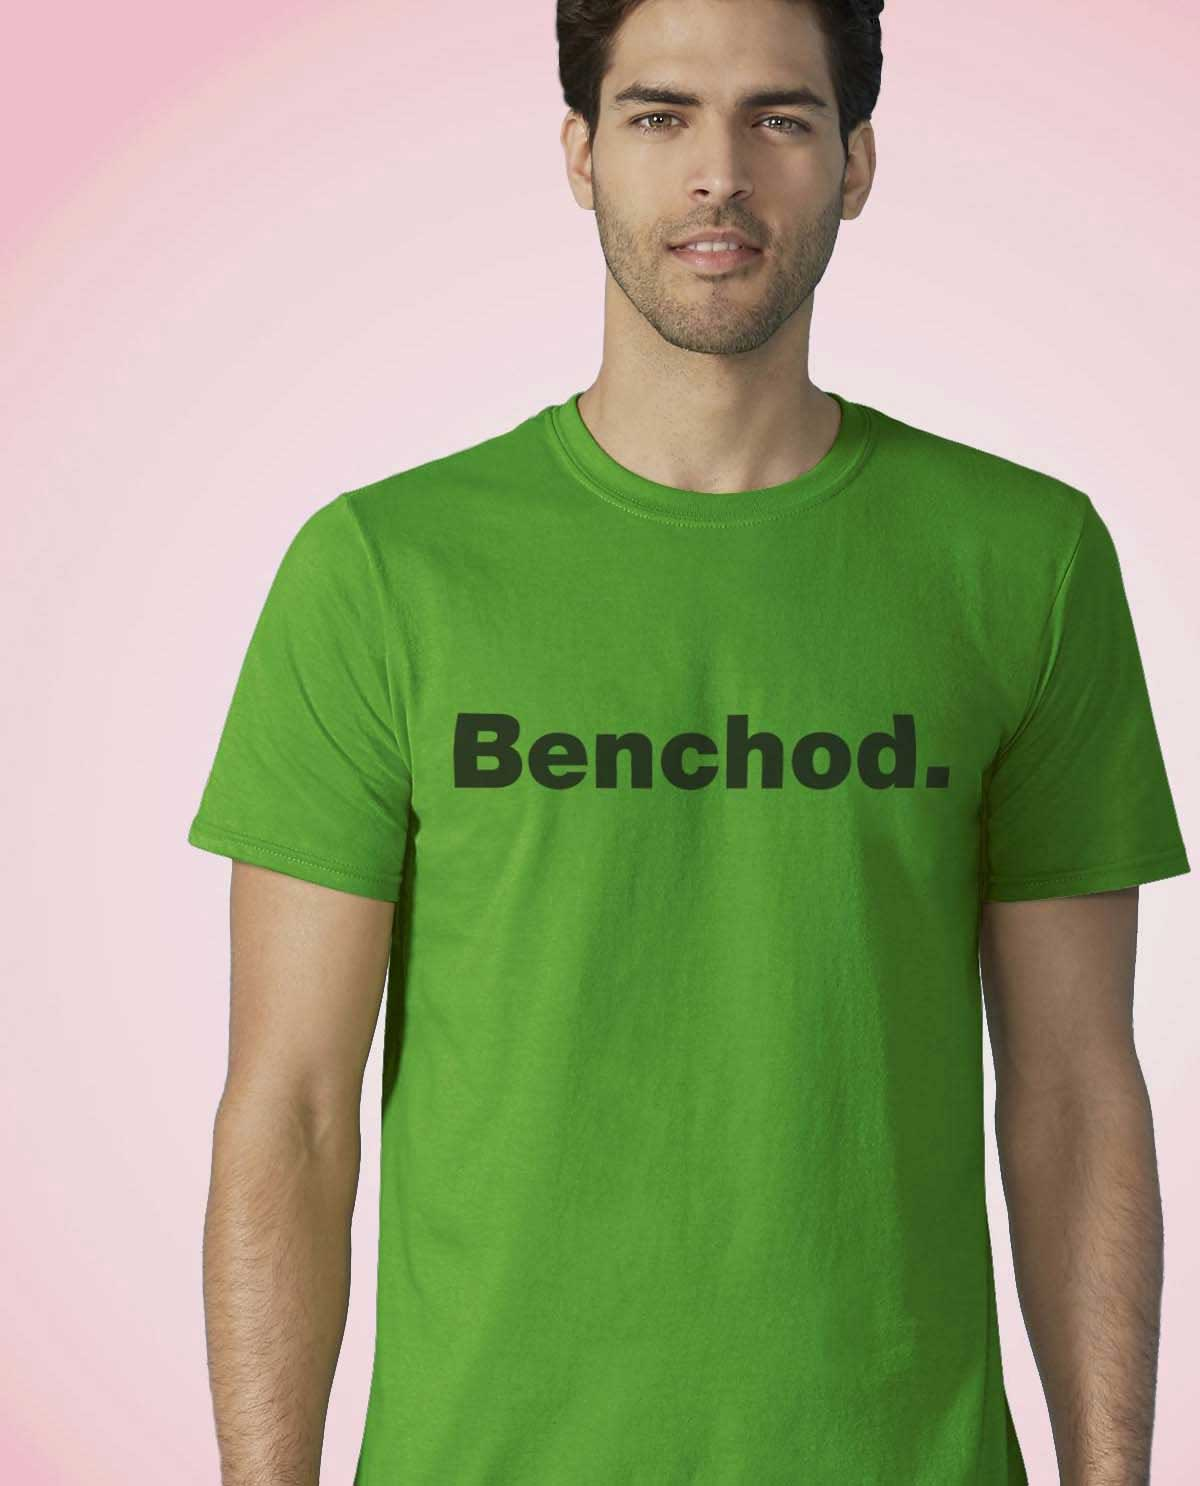 South Asian Male Model wearing green Benchod. t.shirt by Brown Man Clothing Co.